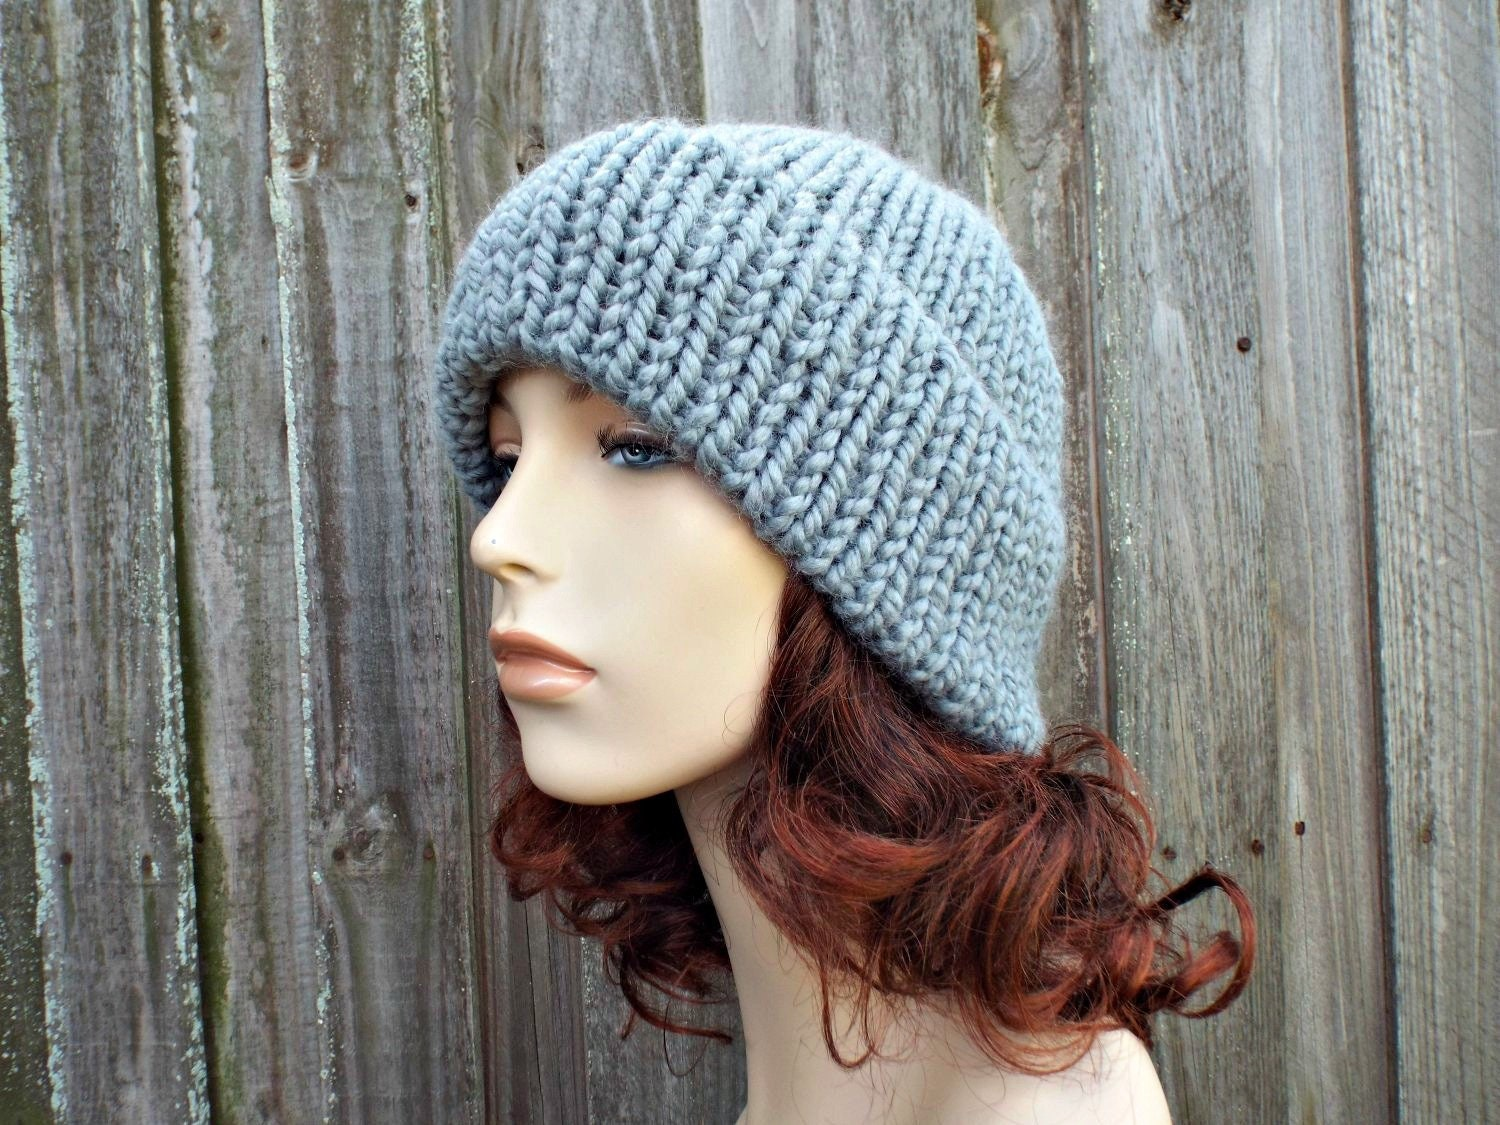 97957f3c4fa839 Double Thick Brim Knit Hat - Grey Mens or Womens Hat Slate Grey Beanie - Warm  Hat Thick Winter Beanie - Grey Hat Grey Beanie - READY TO SHIP